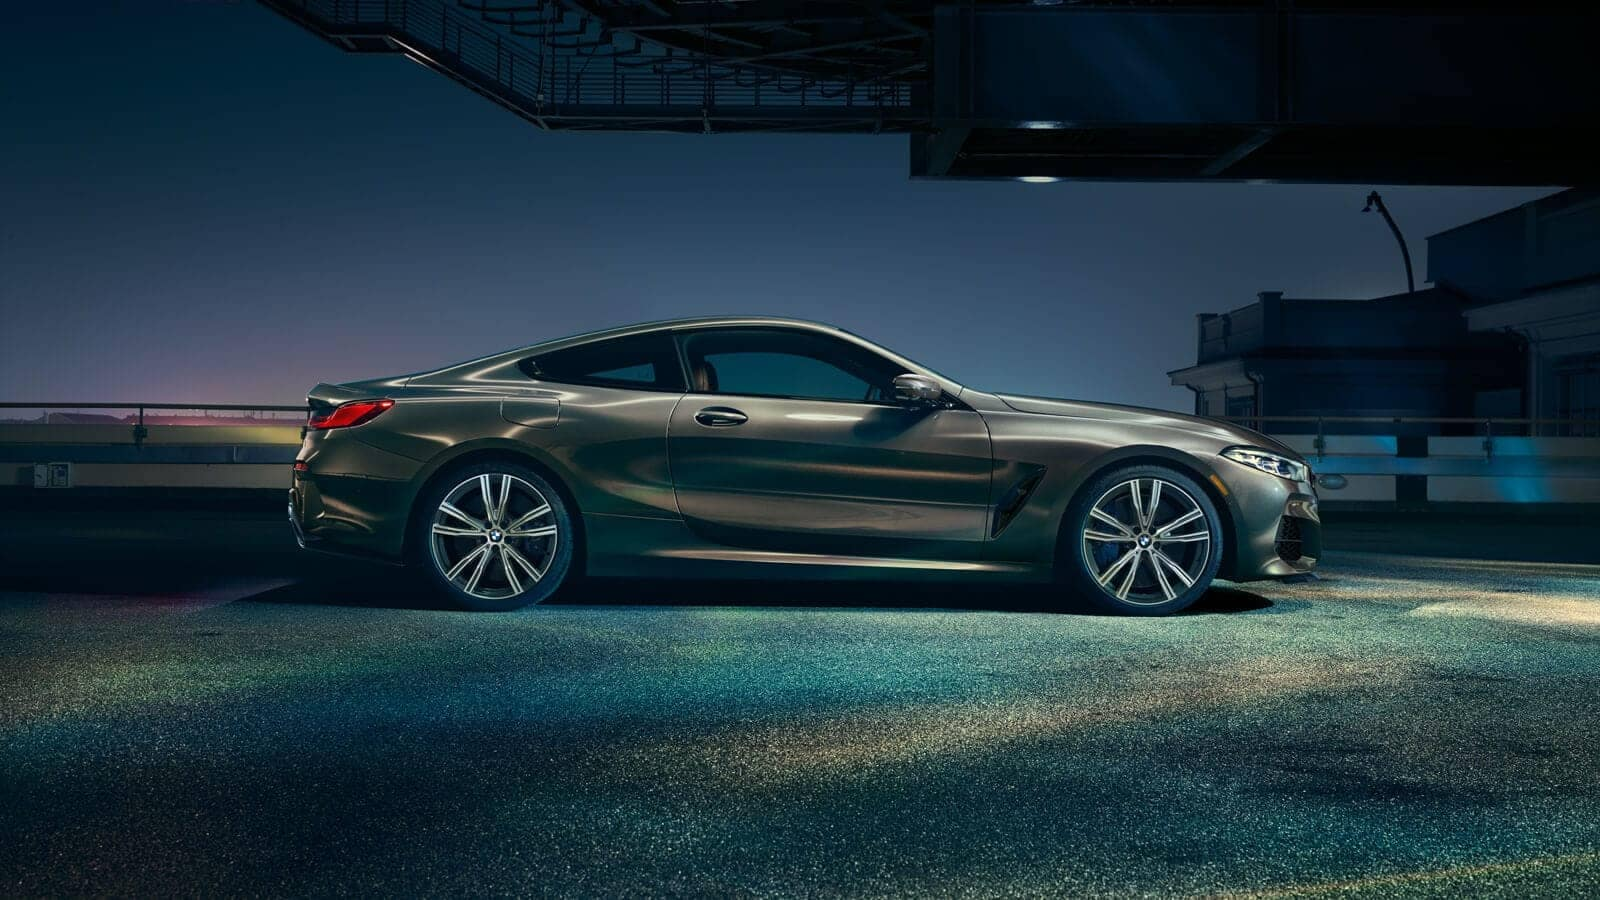 2019 BMW 8 Series side view